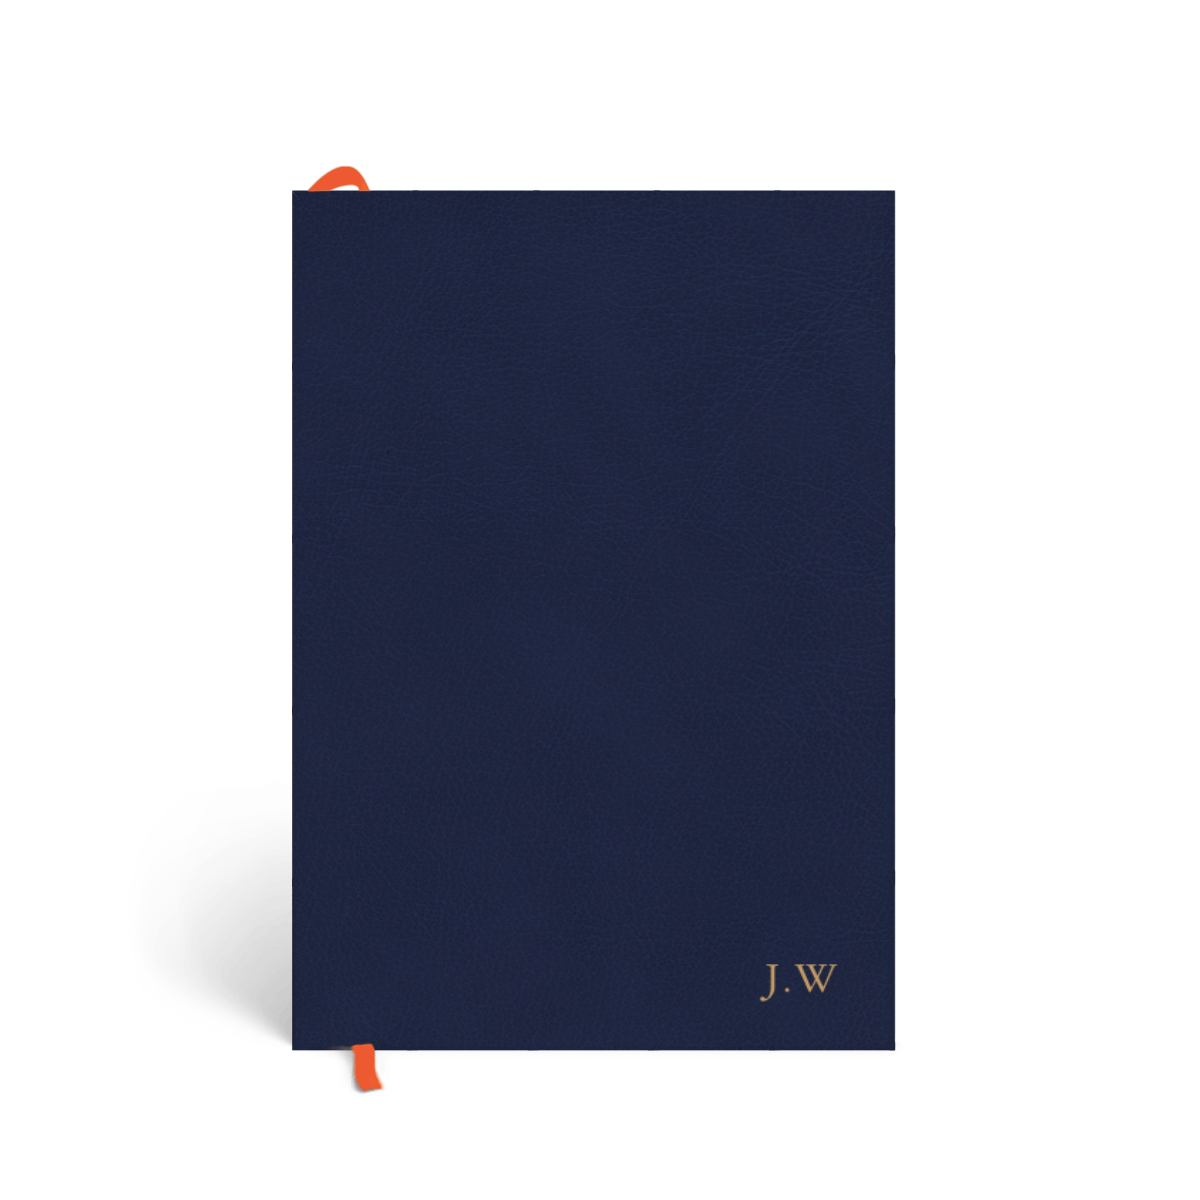 Https%3a%2f%2fwww.papier.com%2fproduct image%2f95538%2f113%2froyal blue monogram 23952 front 1573232823.png?ixlib=rb 1.1